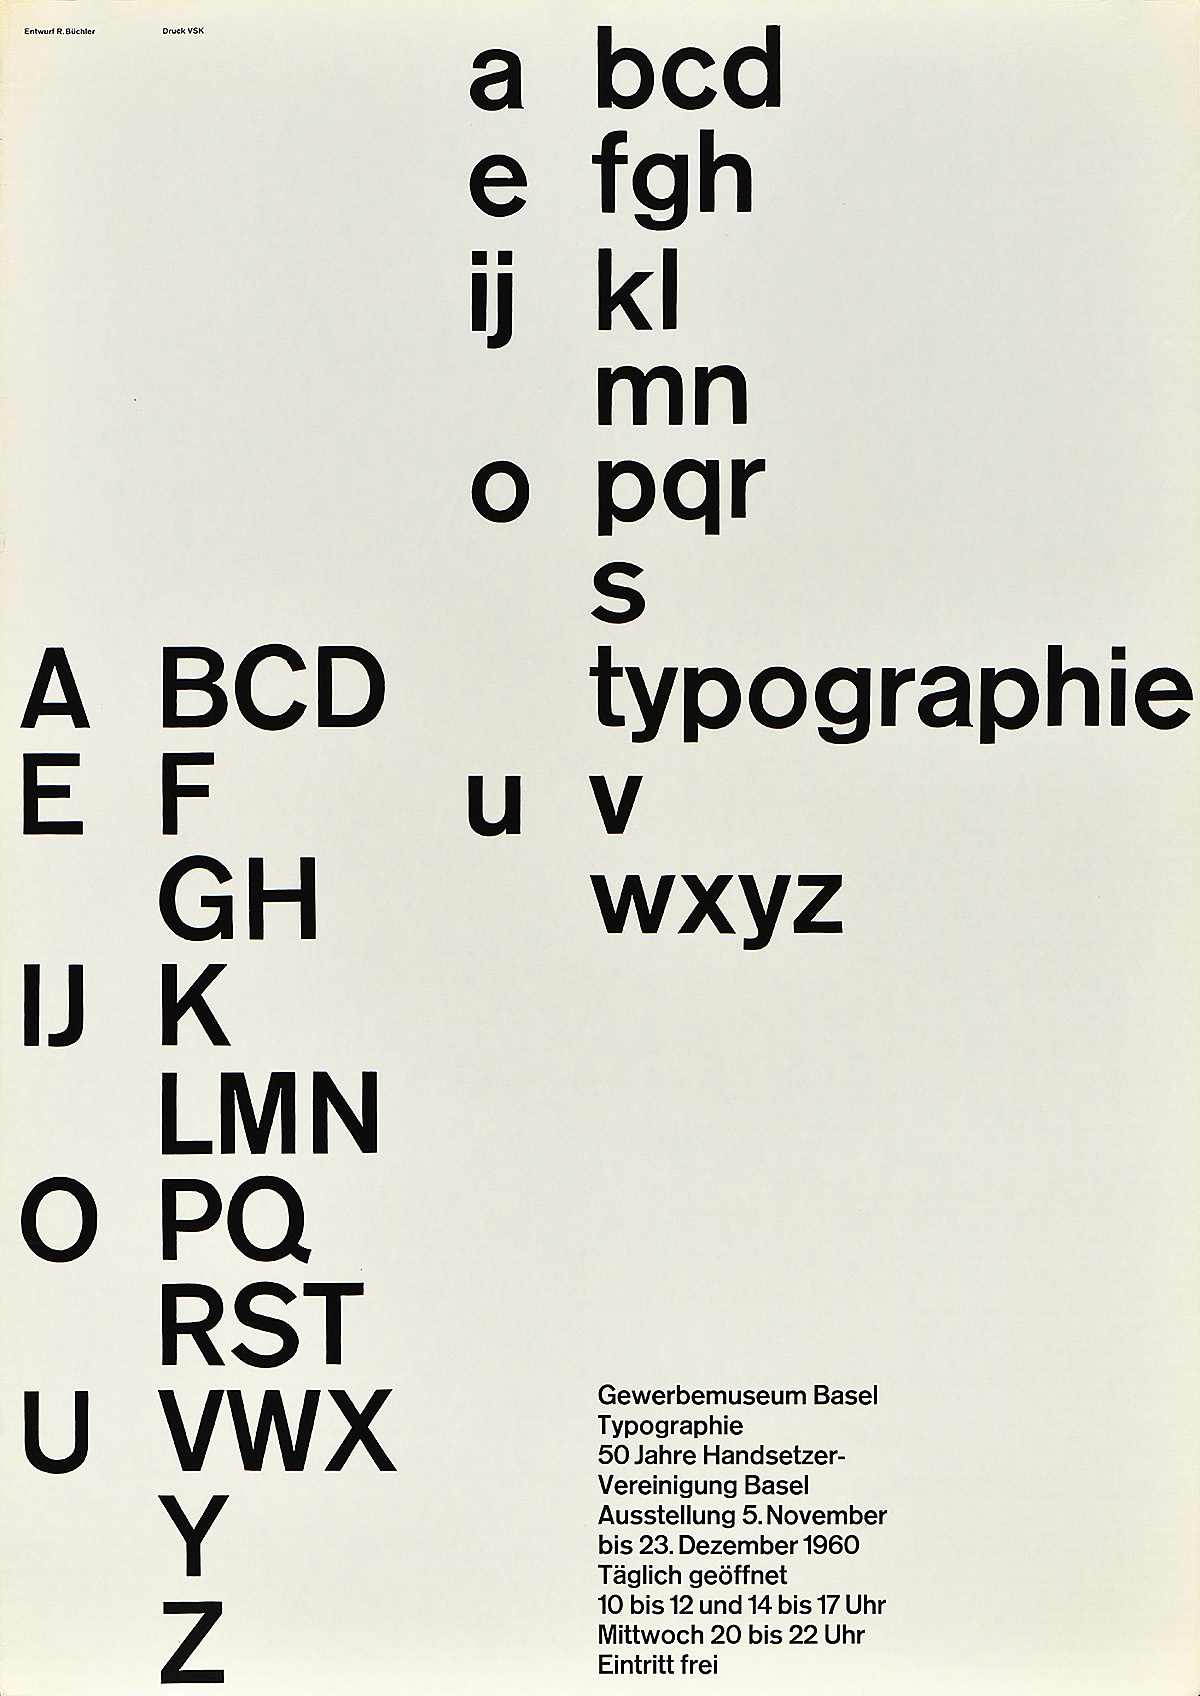 type-based poster of the alphabet running down the page vertically in black on a white background